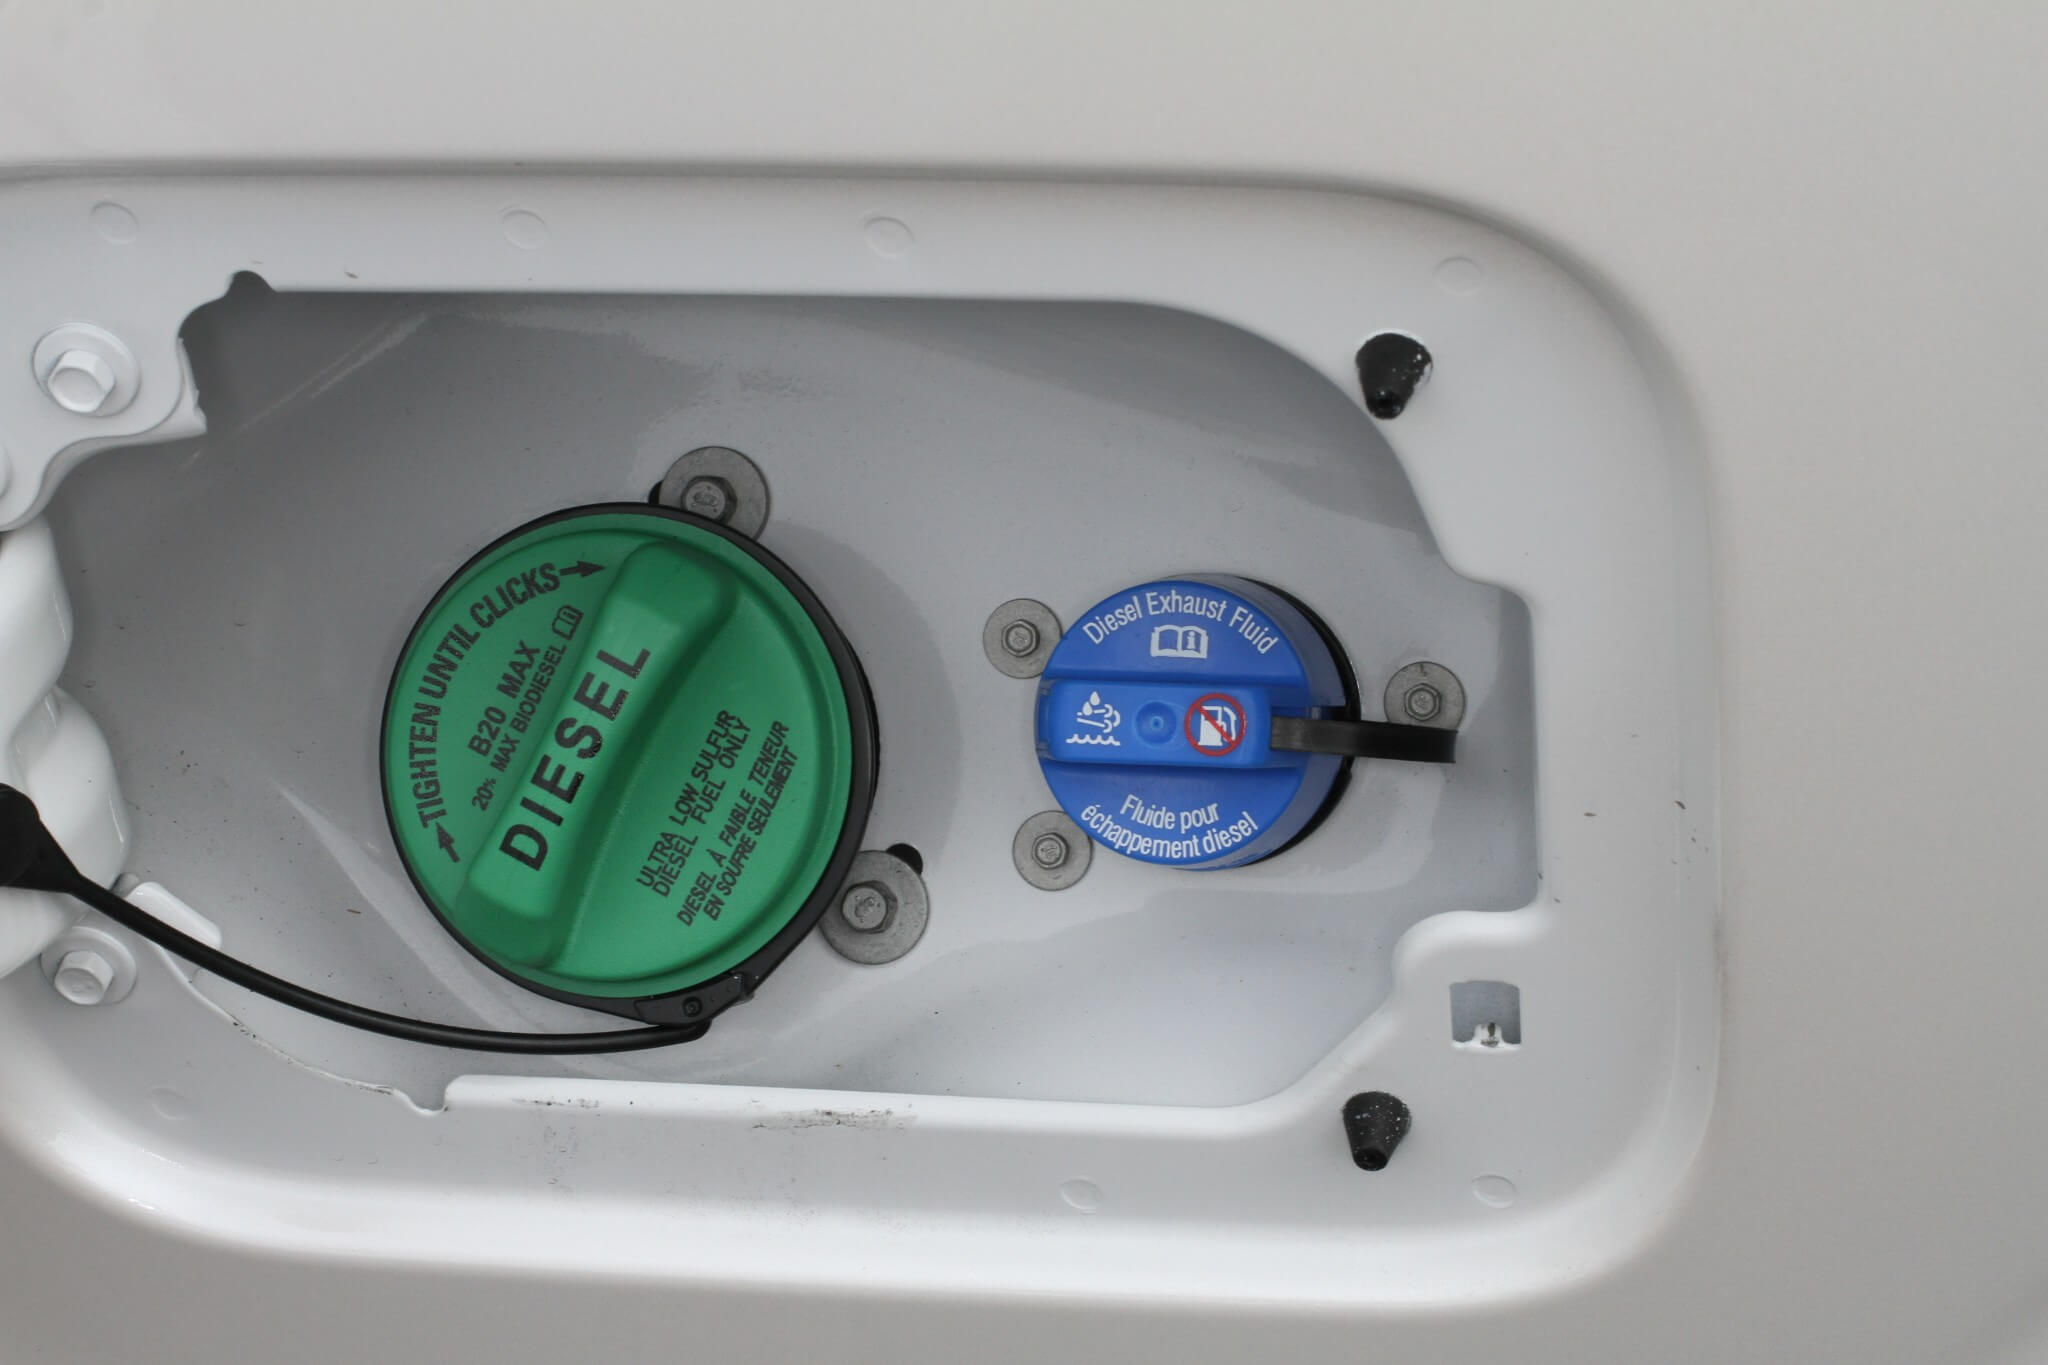 7. The DEF fill location is different between models and brands. The fuel and DEF fill are both located in the fuel door on this Ford pickup. While diesel fuel caps can vary in color, green is the most common. DEF fill caps are typically blue.